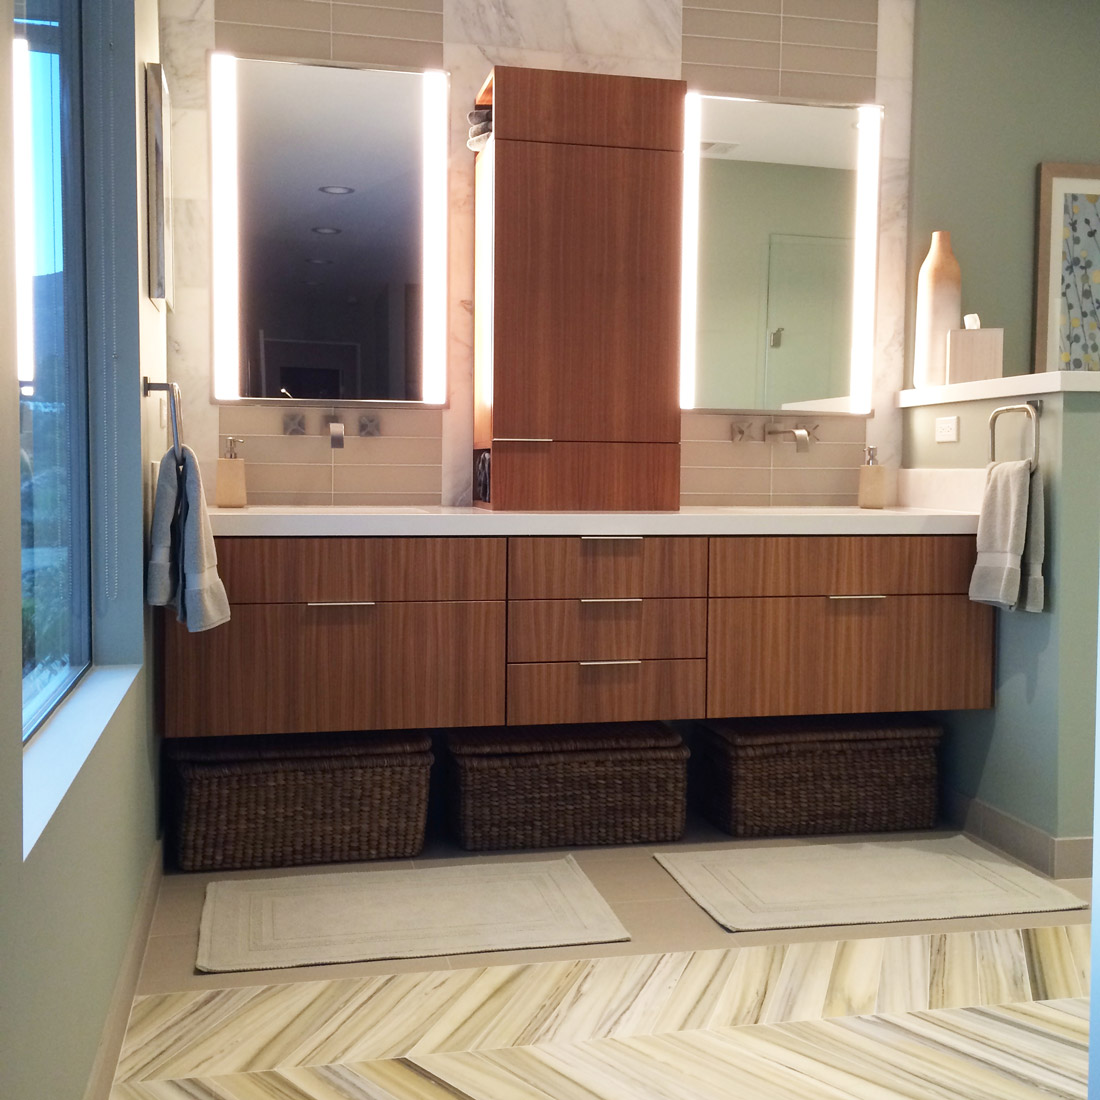 modern master bath with custom walnut floating vanity and glass and marble tile pattern for backsplash recessed lighted mirrors and chevron tile pattern on floor design by sara bates interior design